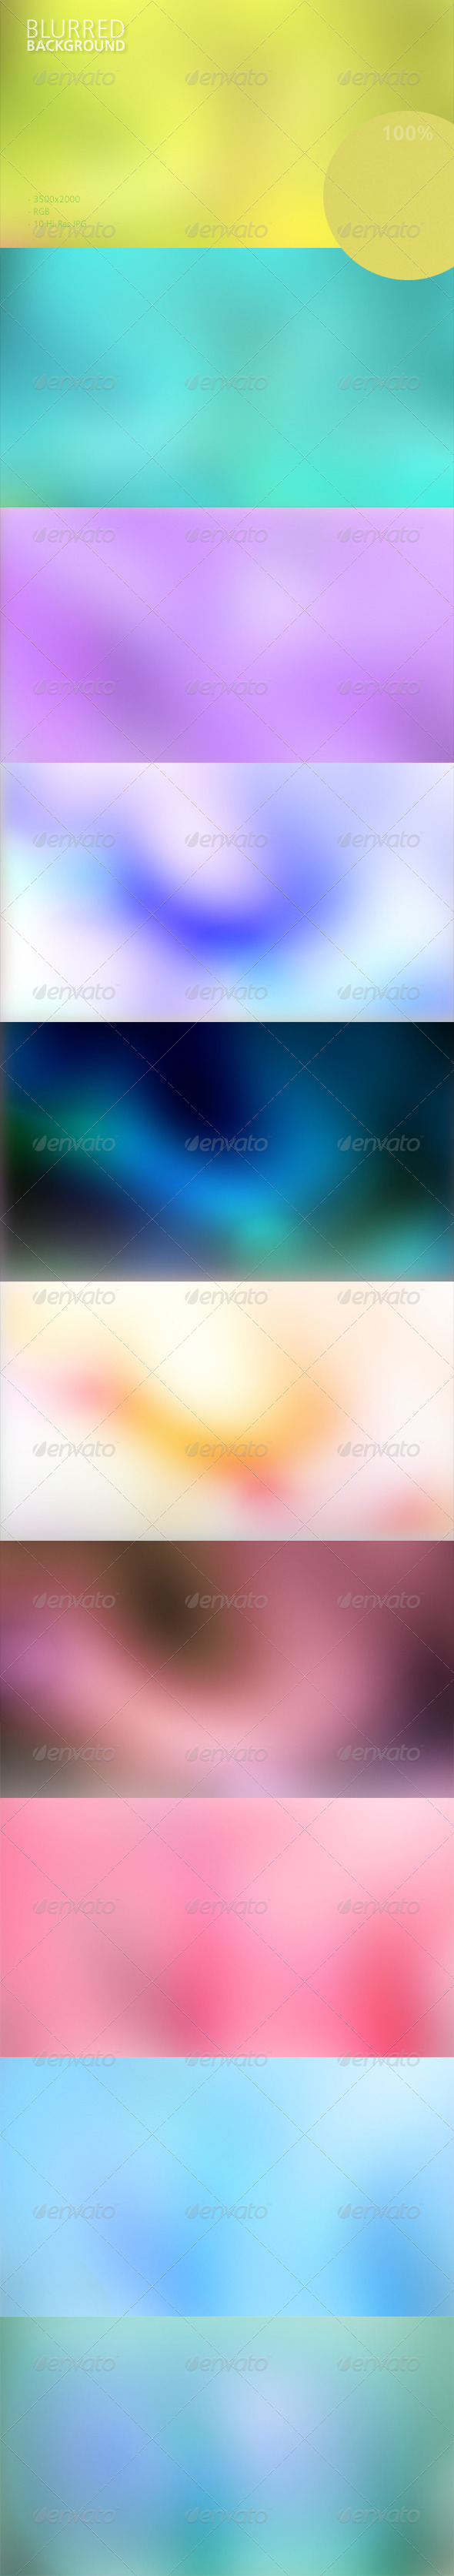 Blurred Background Set - Abstract Backgrounds